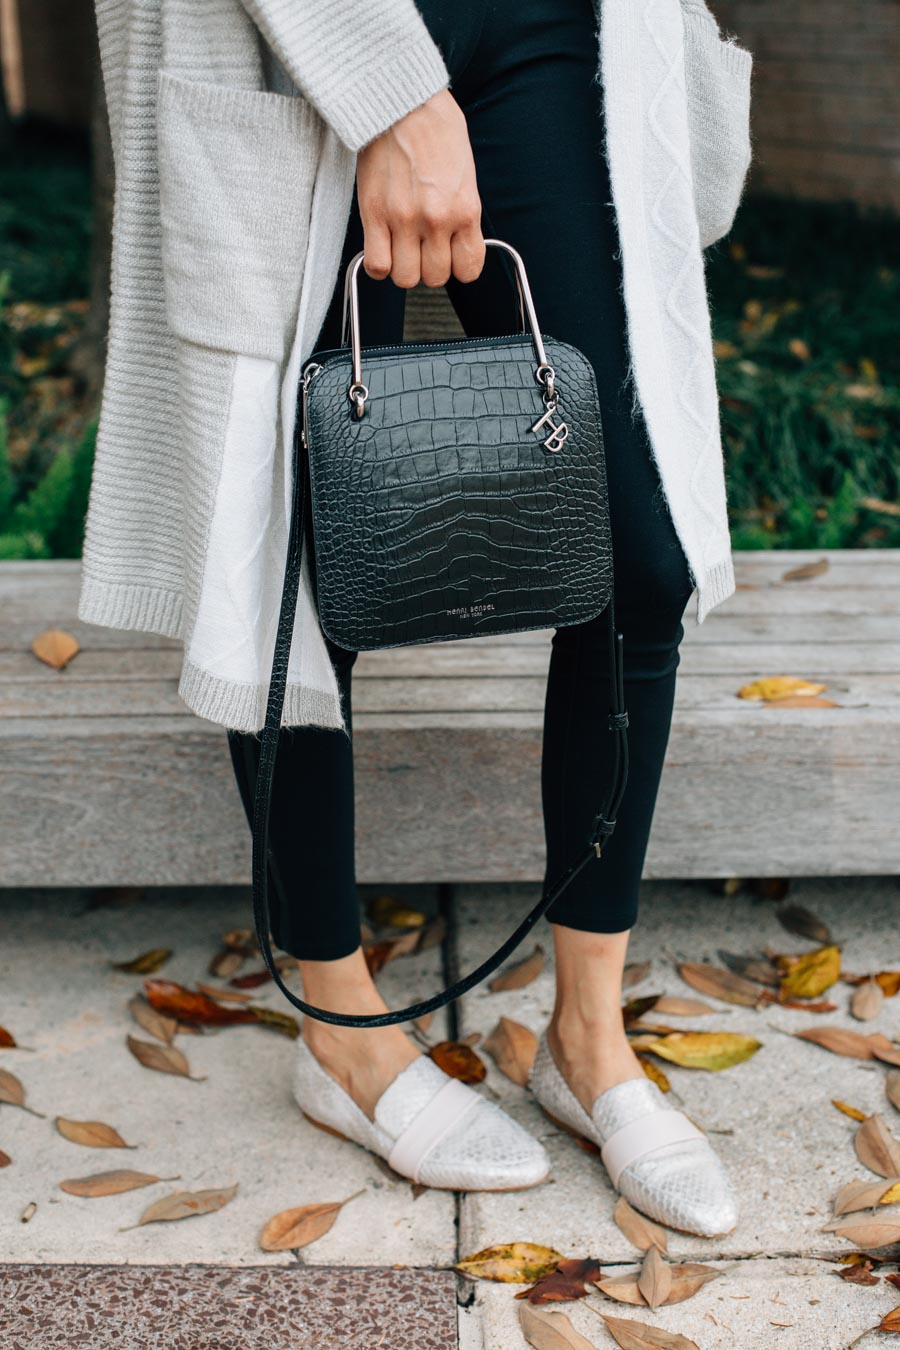 Henri Bendel croc embossed bag